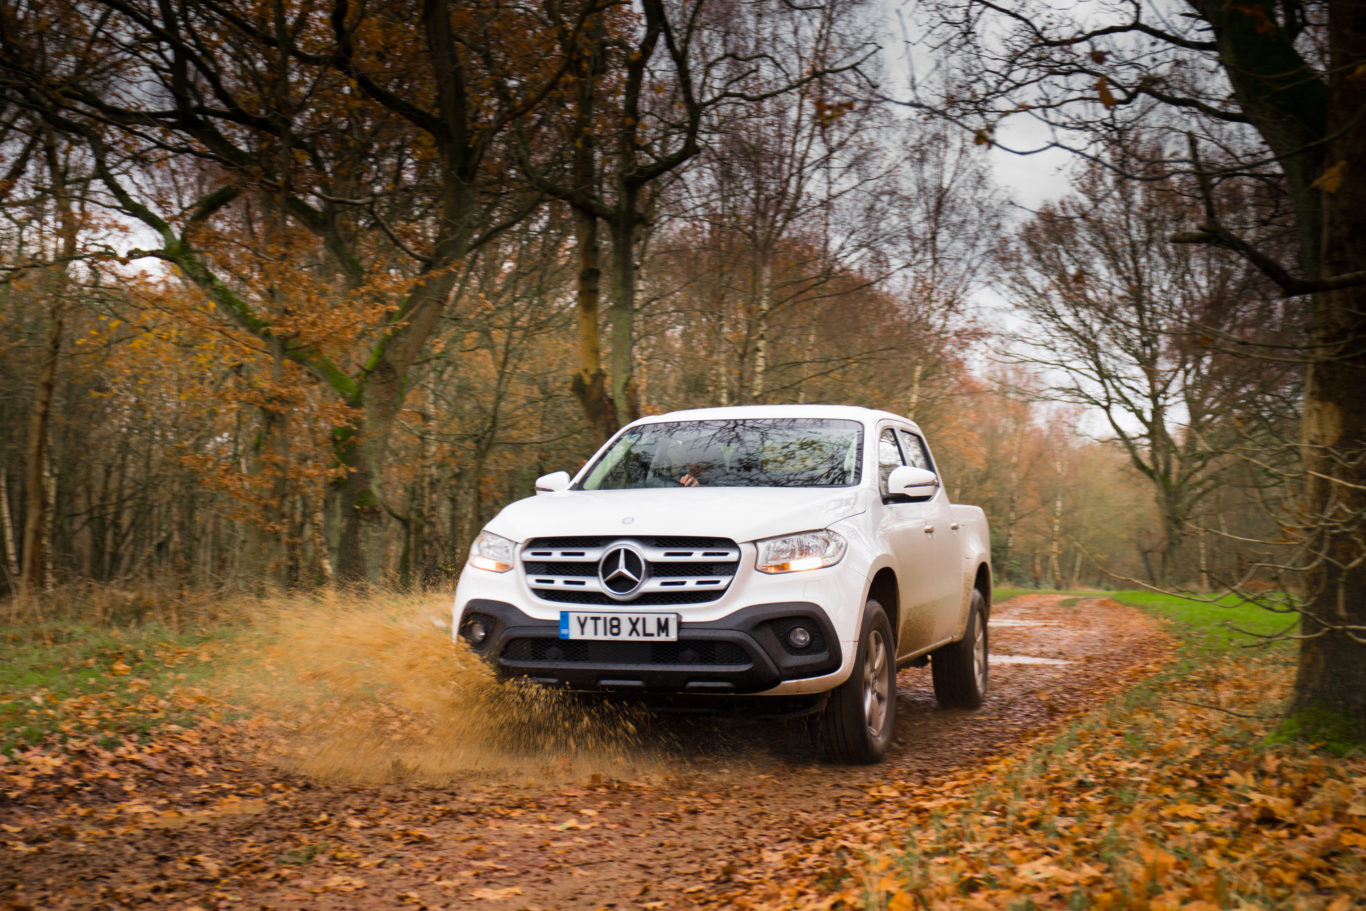 Plenty of ground clearance makes the X-Class formidable off-road